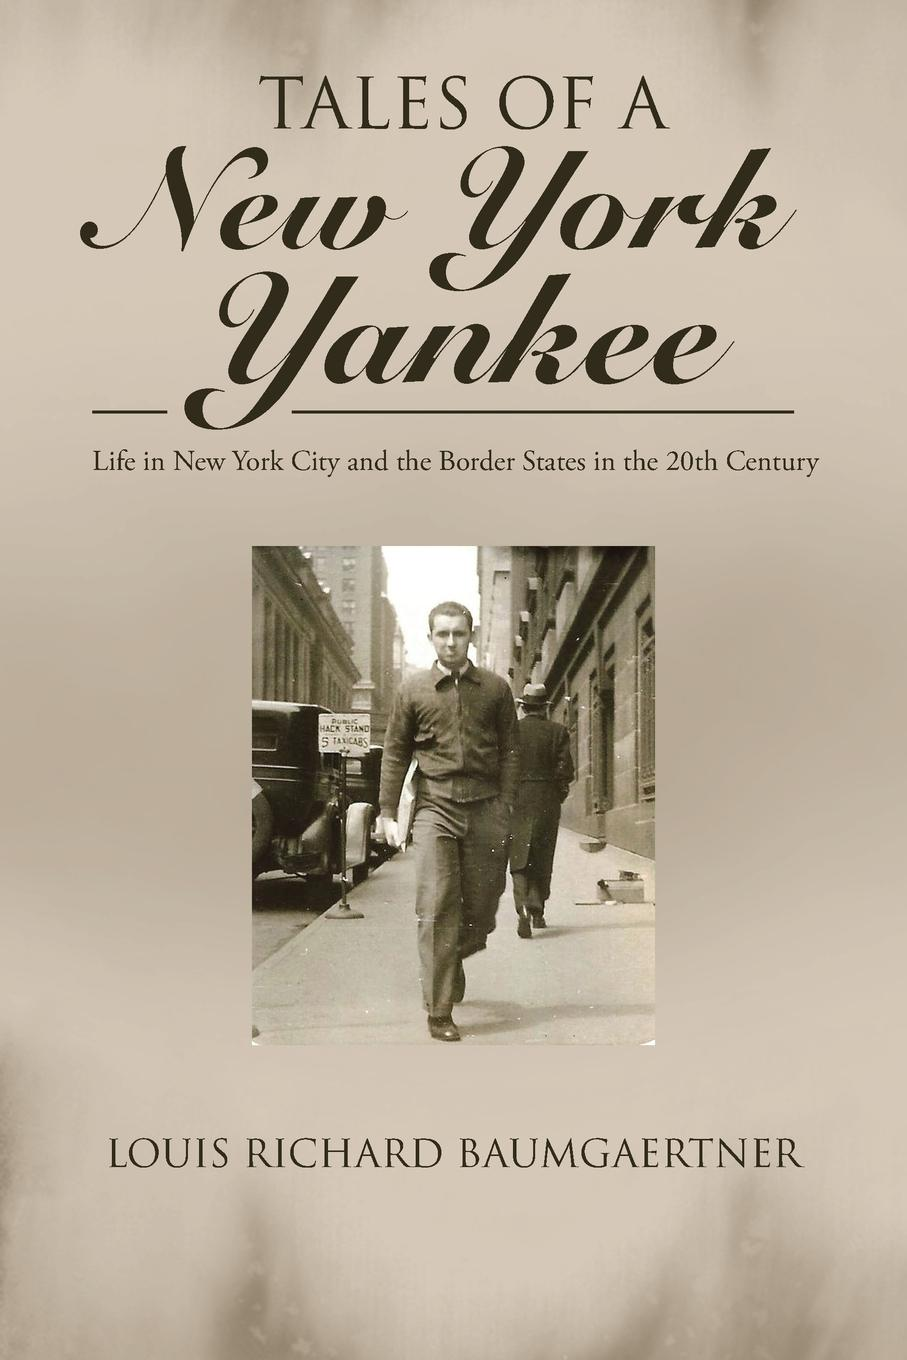 цена на Louis Richard Baumgaertner Tales of a New York Yankee. Life in New York City and the Border States in the 20th Century